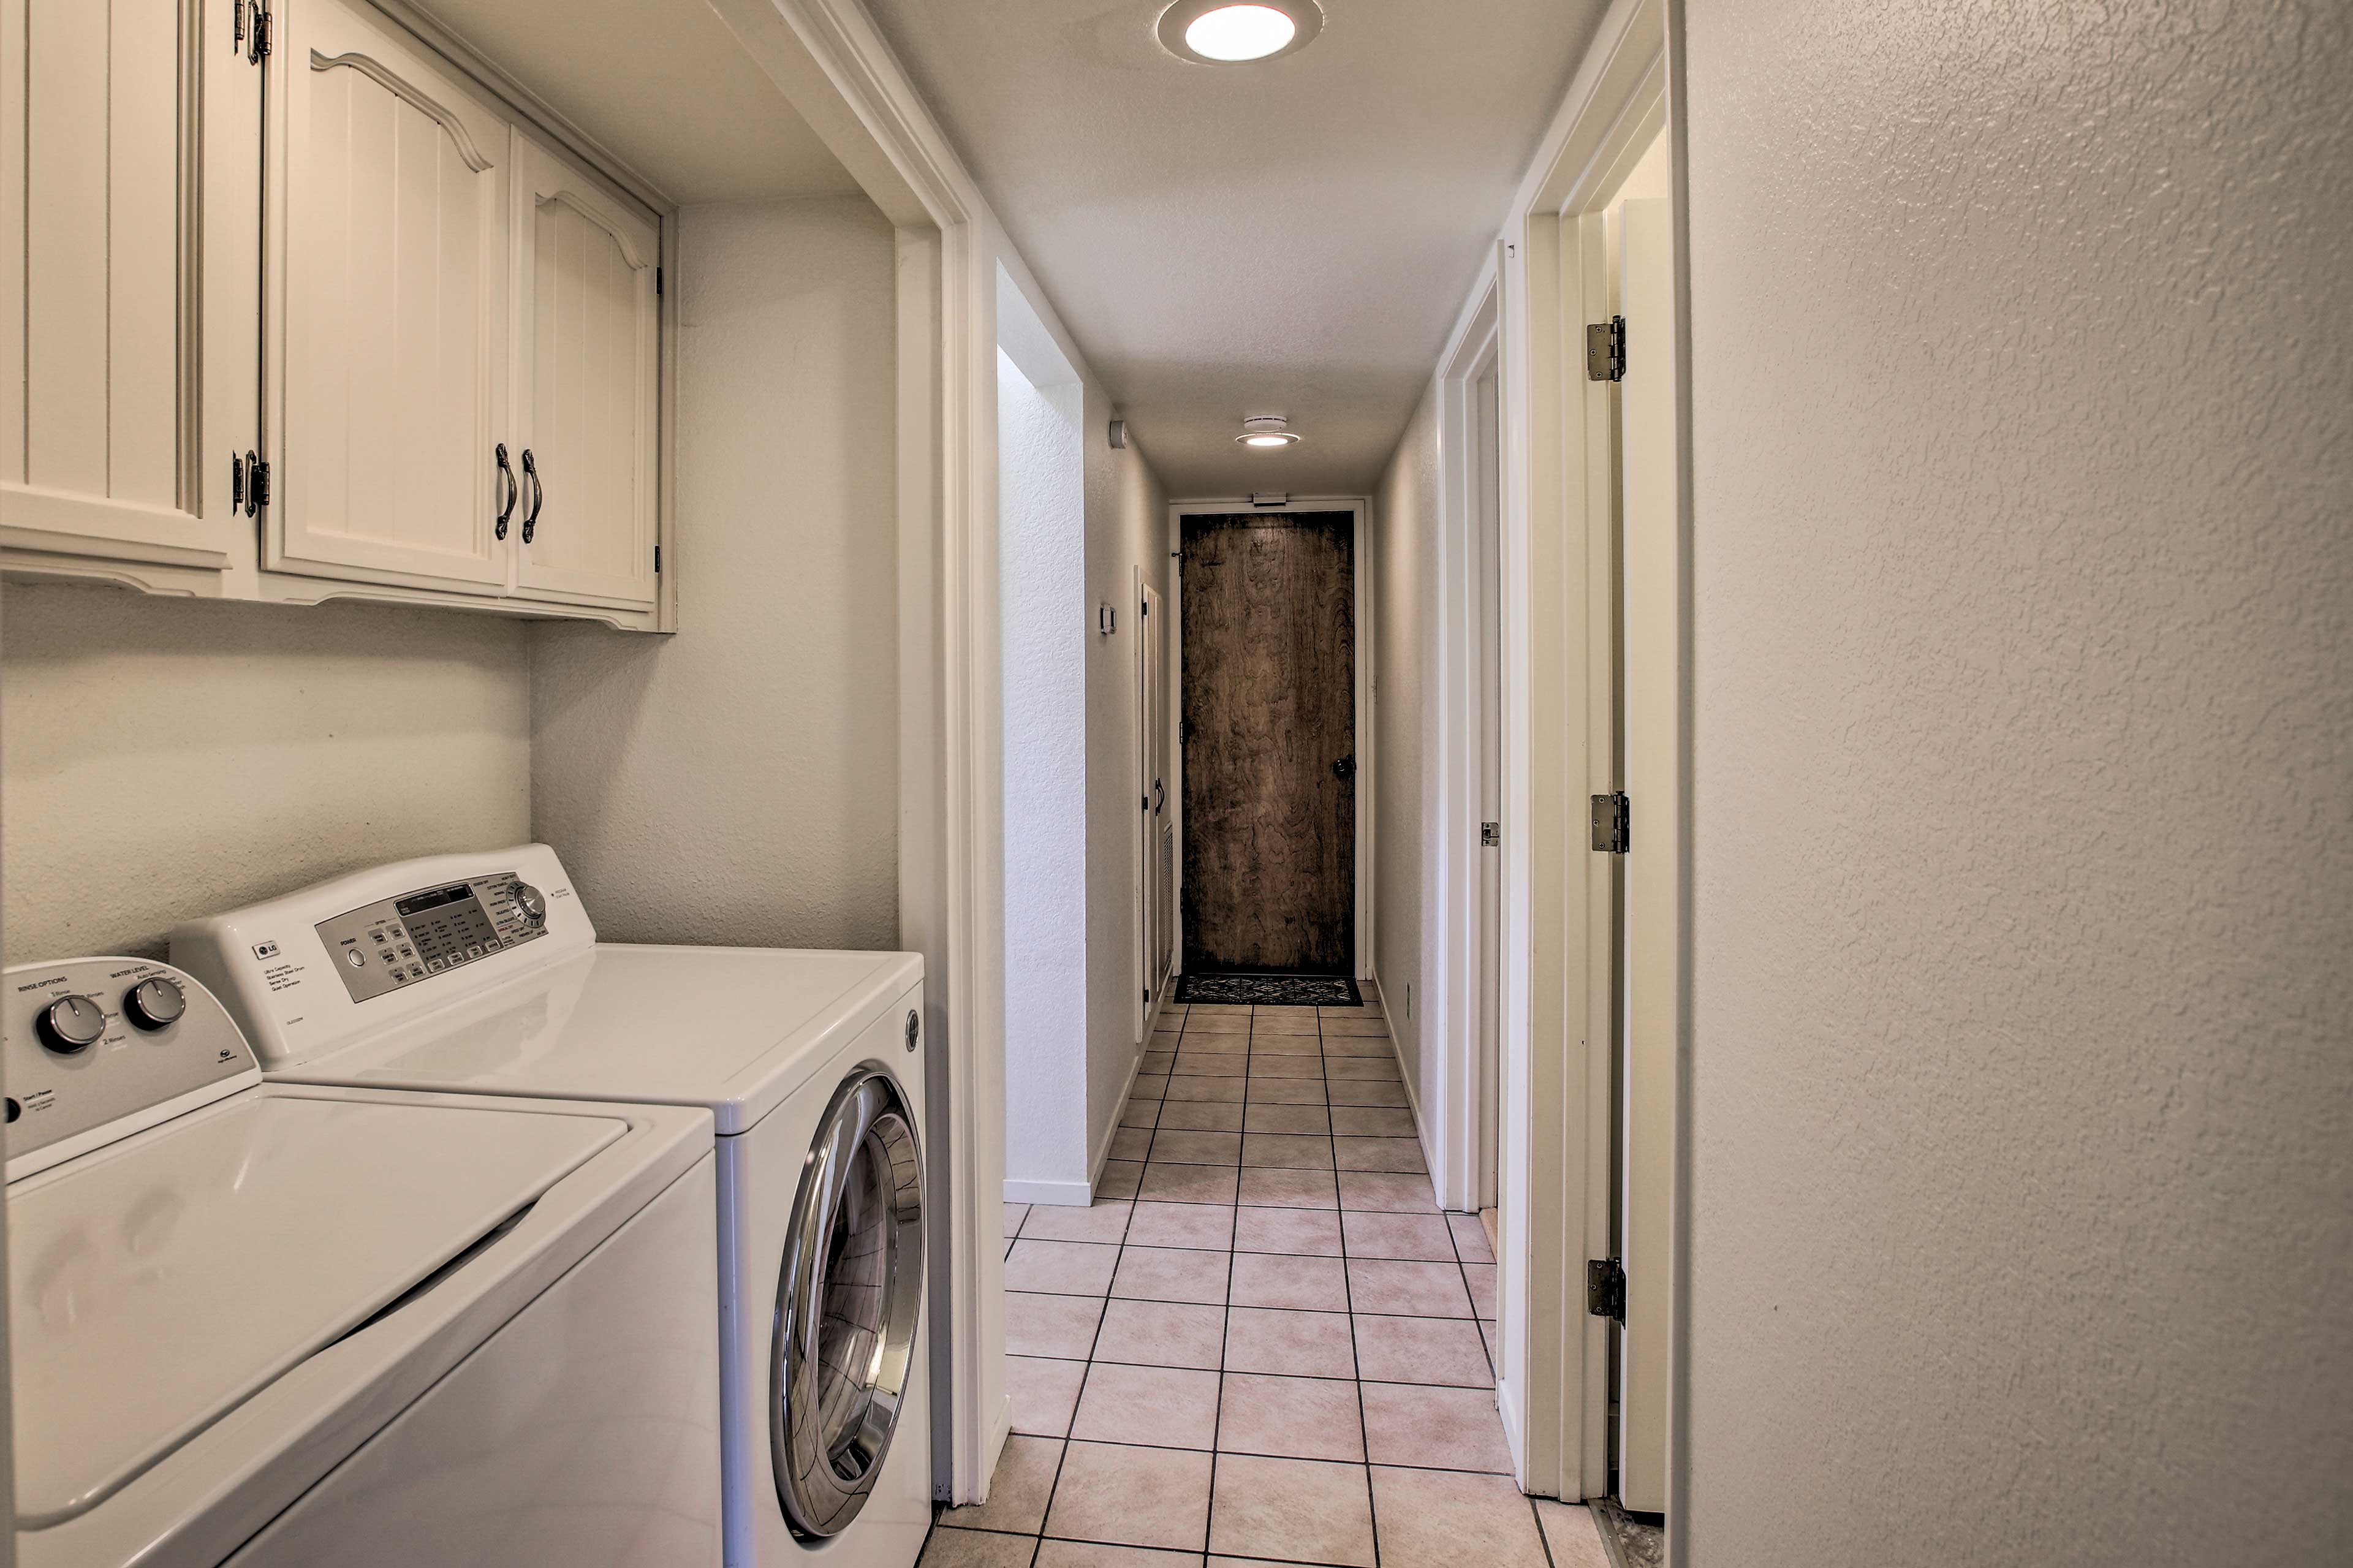 Keep you wardrobe clean and fresh with the home's laundry machines.